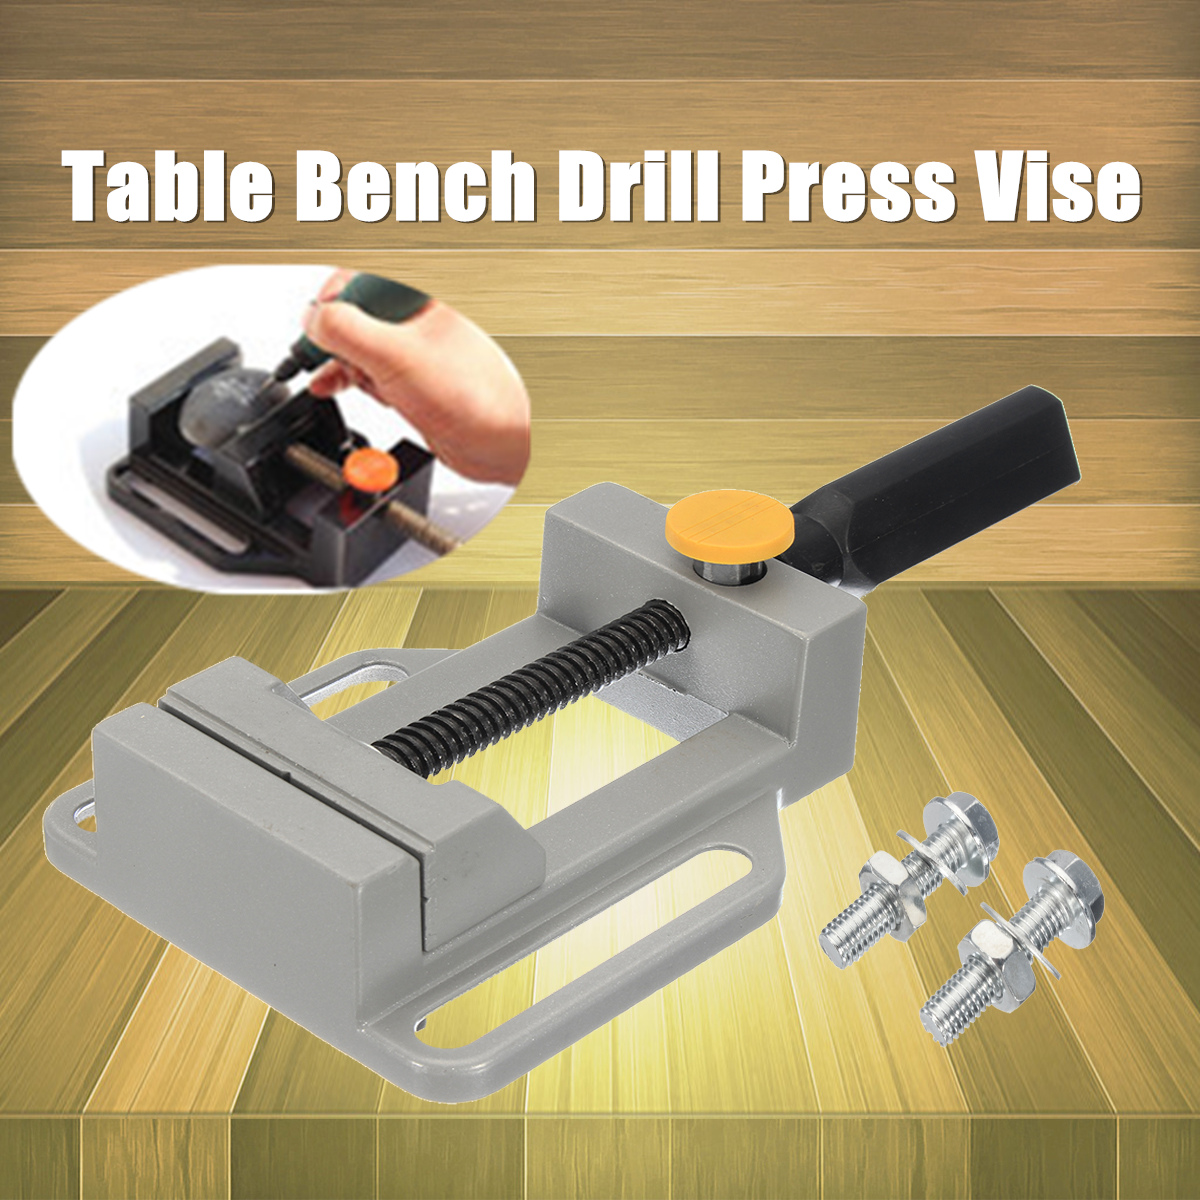 Multifunction Milling Repair Machine Premium Premium Premium Deluxe worktable 2 Axis Bench Vise 0f6b4e